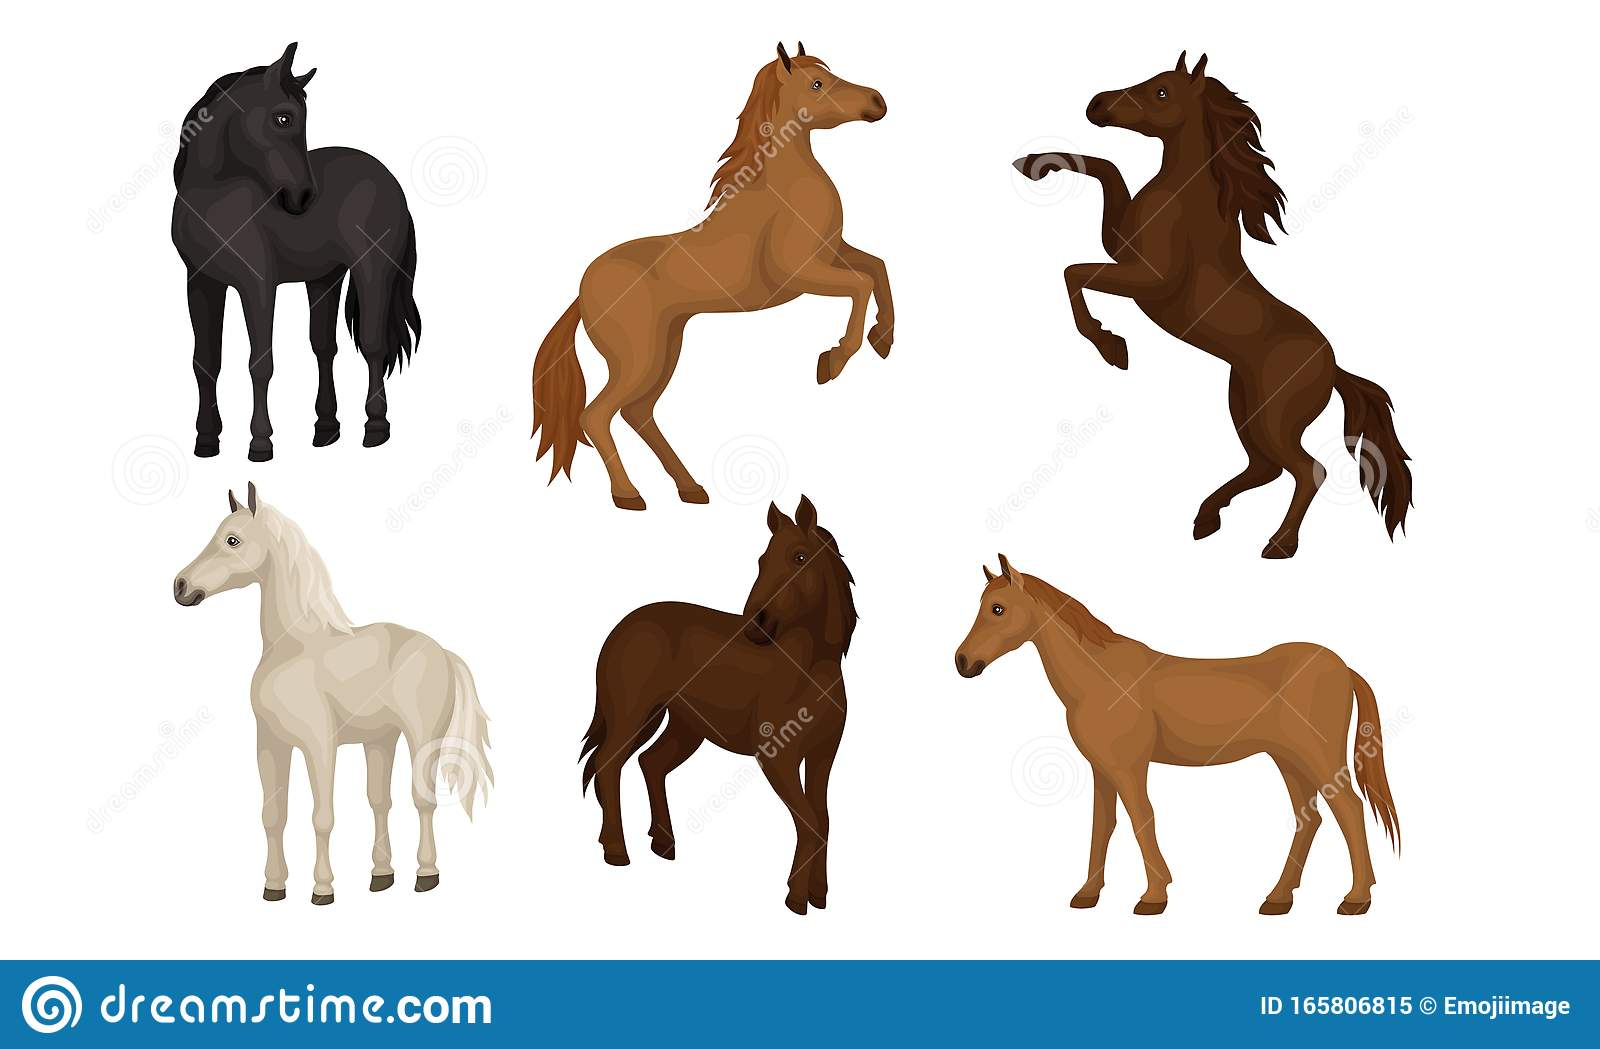 Horse Breeds Collection Beautiful Horses Of Different Colors Vector Illustration Stock Vector Illustration Of Farm Action 165806815